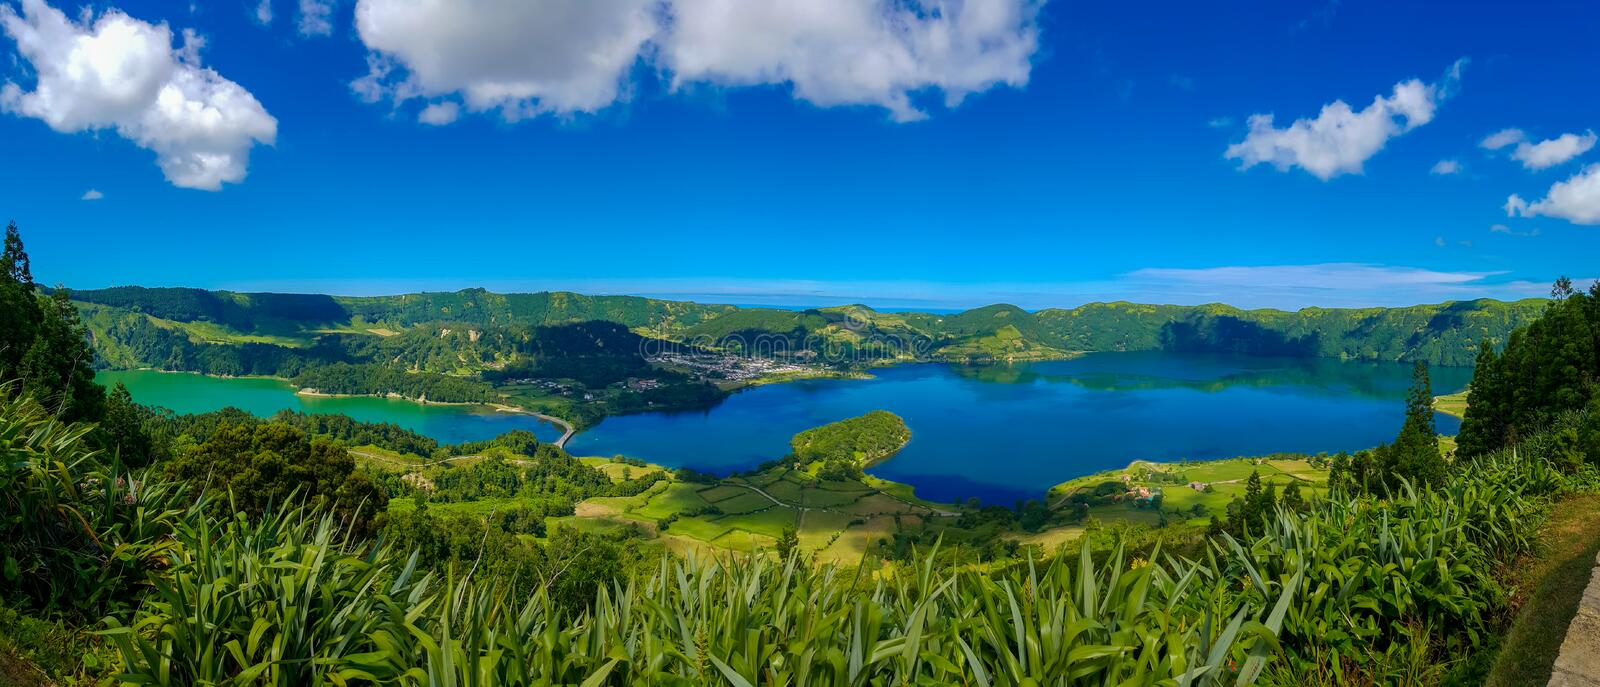 Lake Azul on the islnad Sao Miguel Azores royalty free stock images